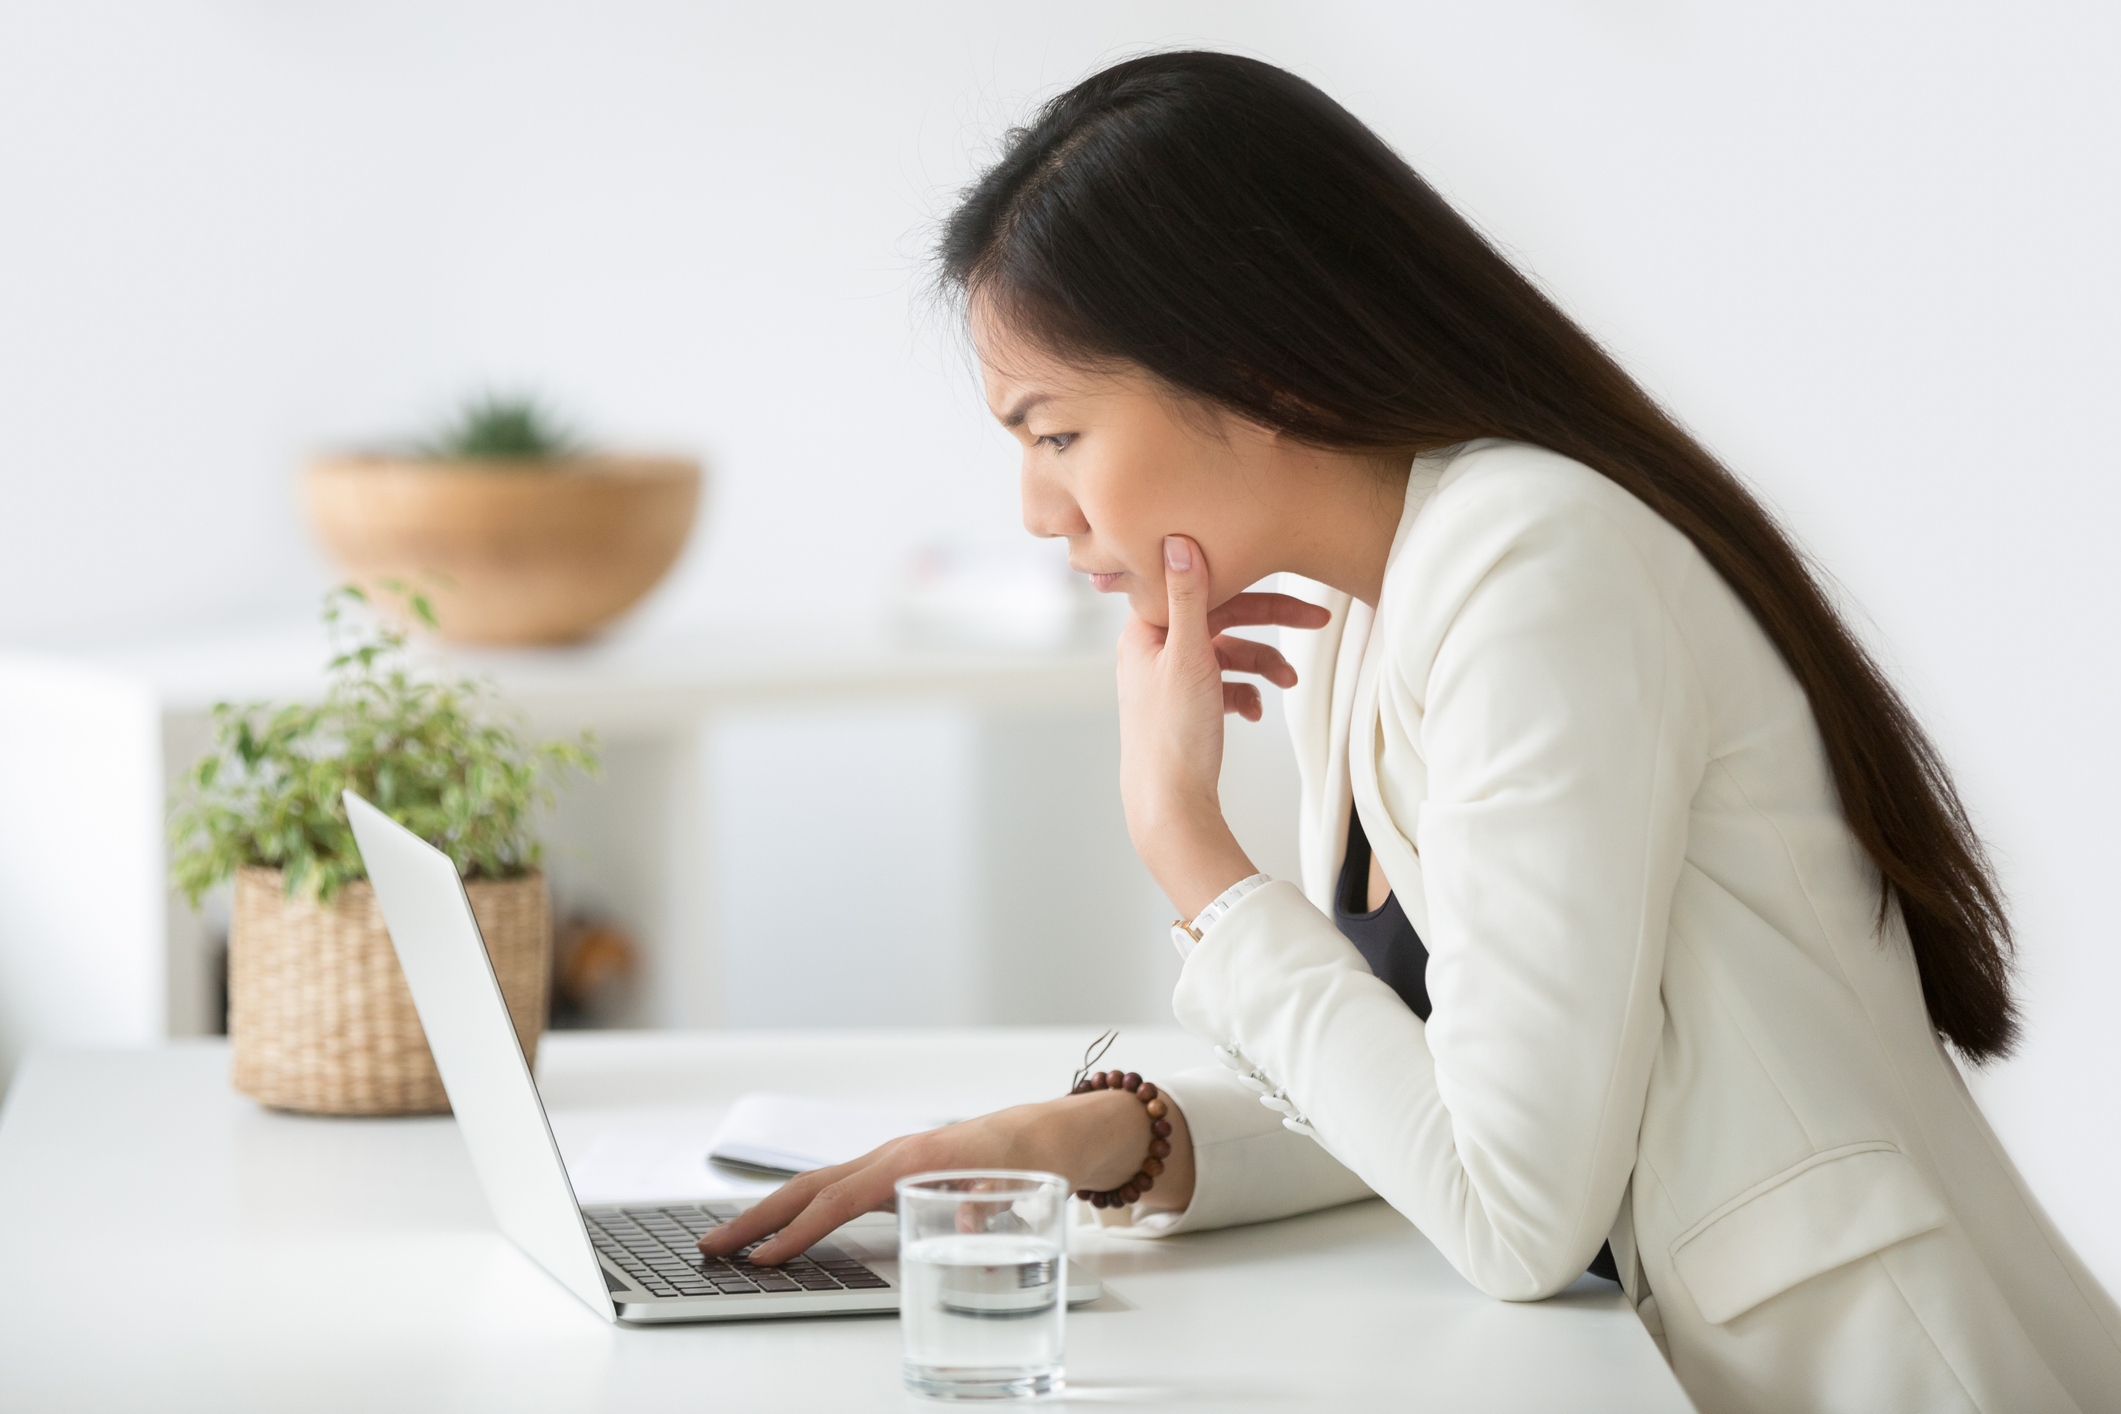 puzzled-confused-asian-woman-thinking-hard-looking-at-laptop-screen